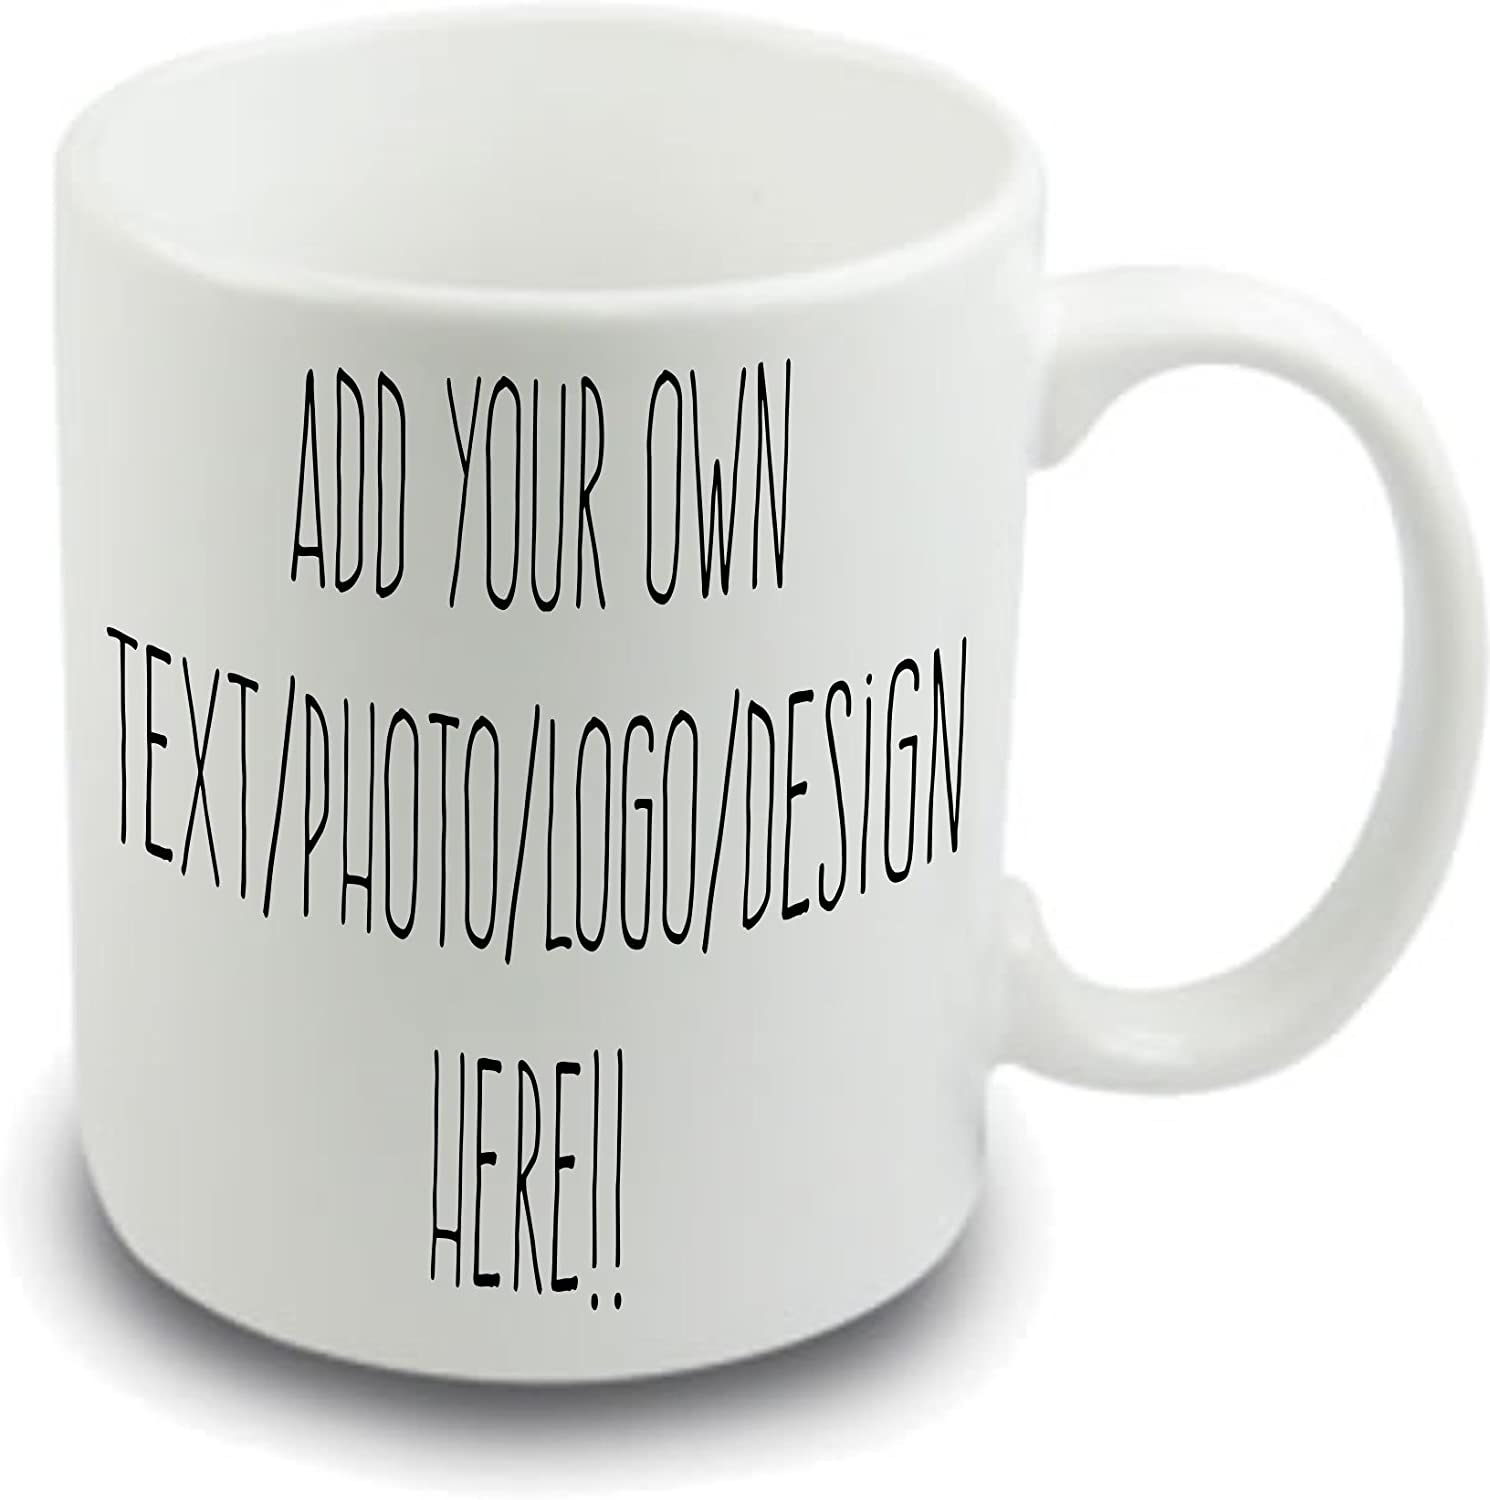 Design your own mug Personalised mug ~ your own name picture message text ~  4 oz white mug